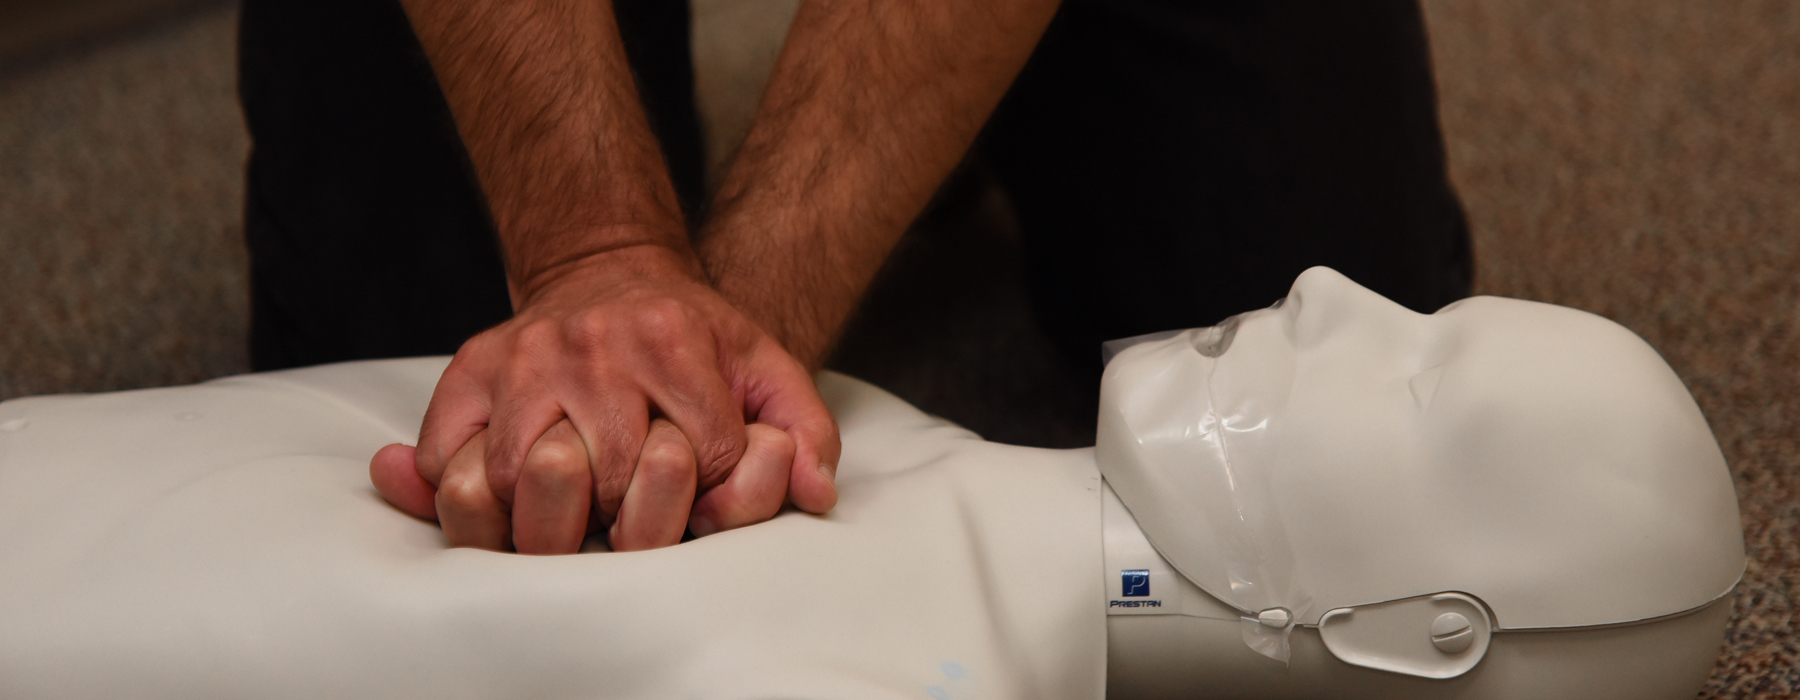 Northstar first acls itls bls pals cpr paramedic aha courses xflitez Image collections